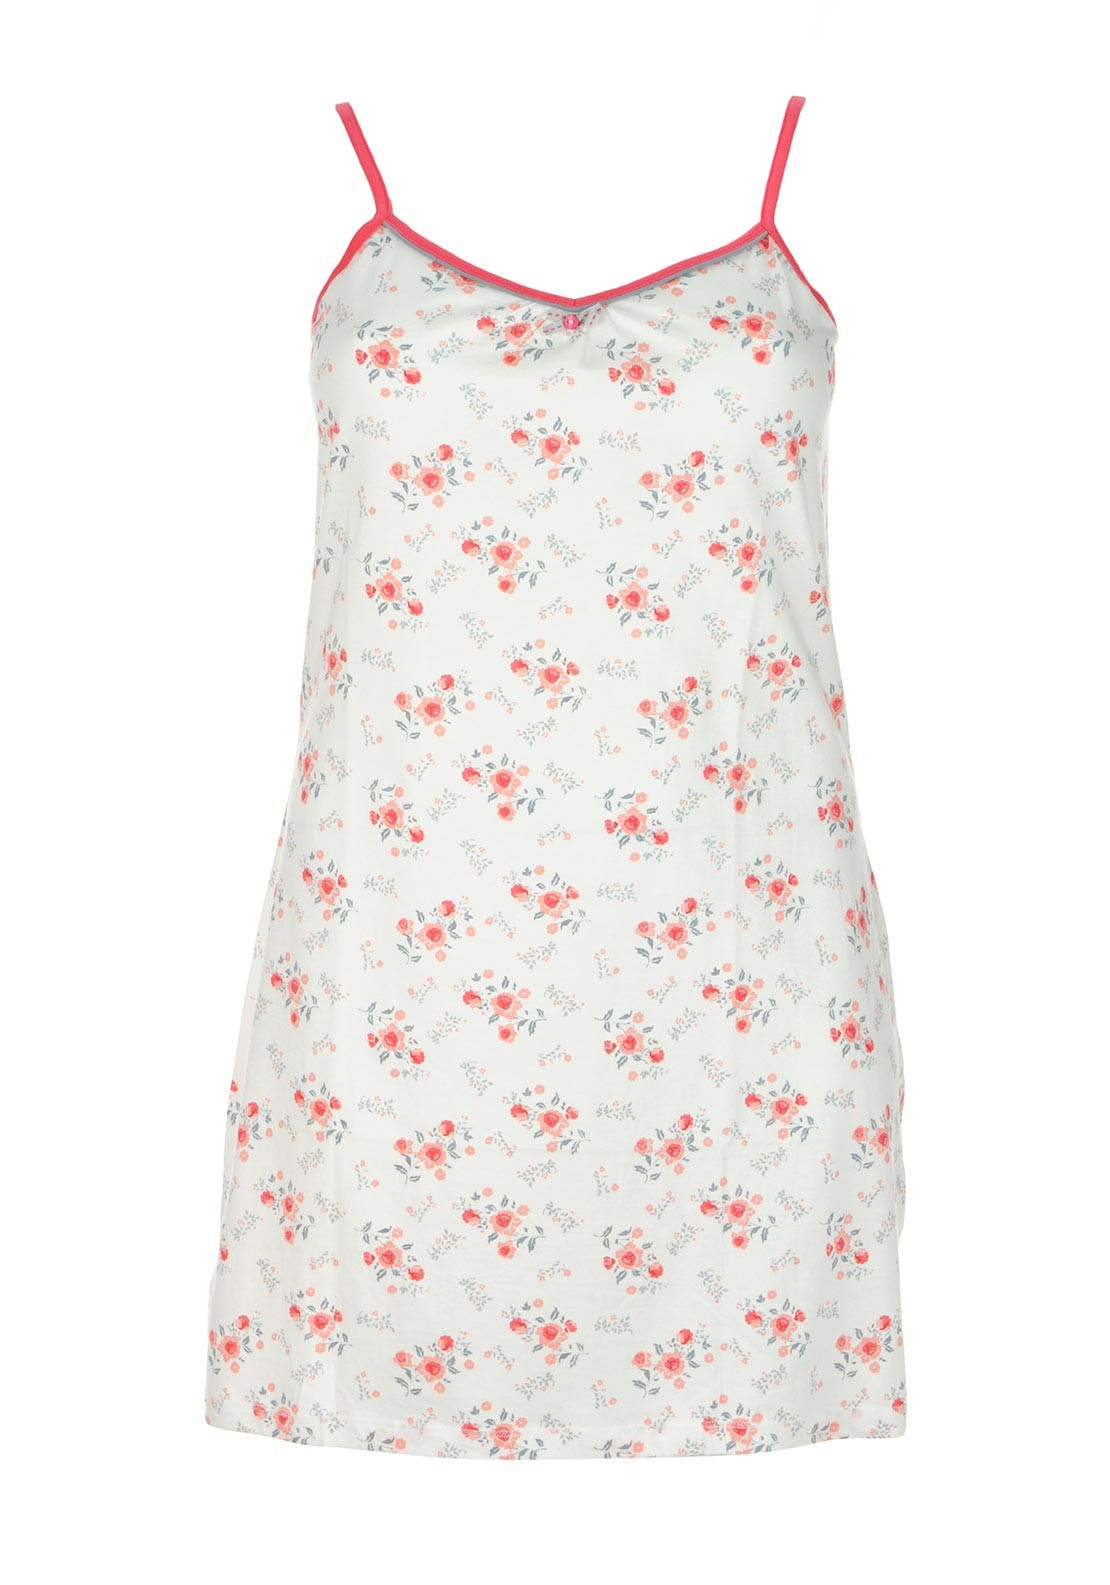 Pastunette Floral Print Sleeveless Nightdress, White Multi